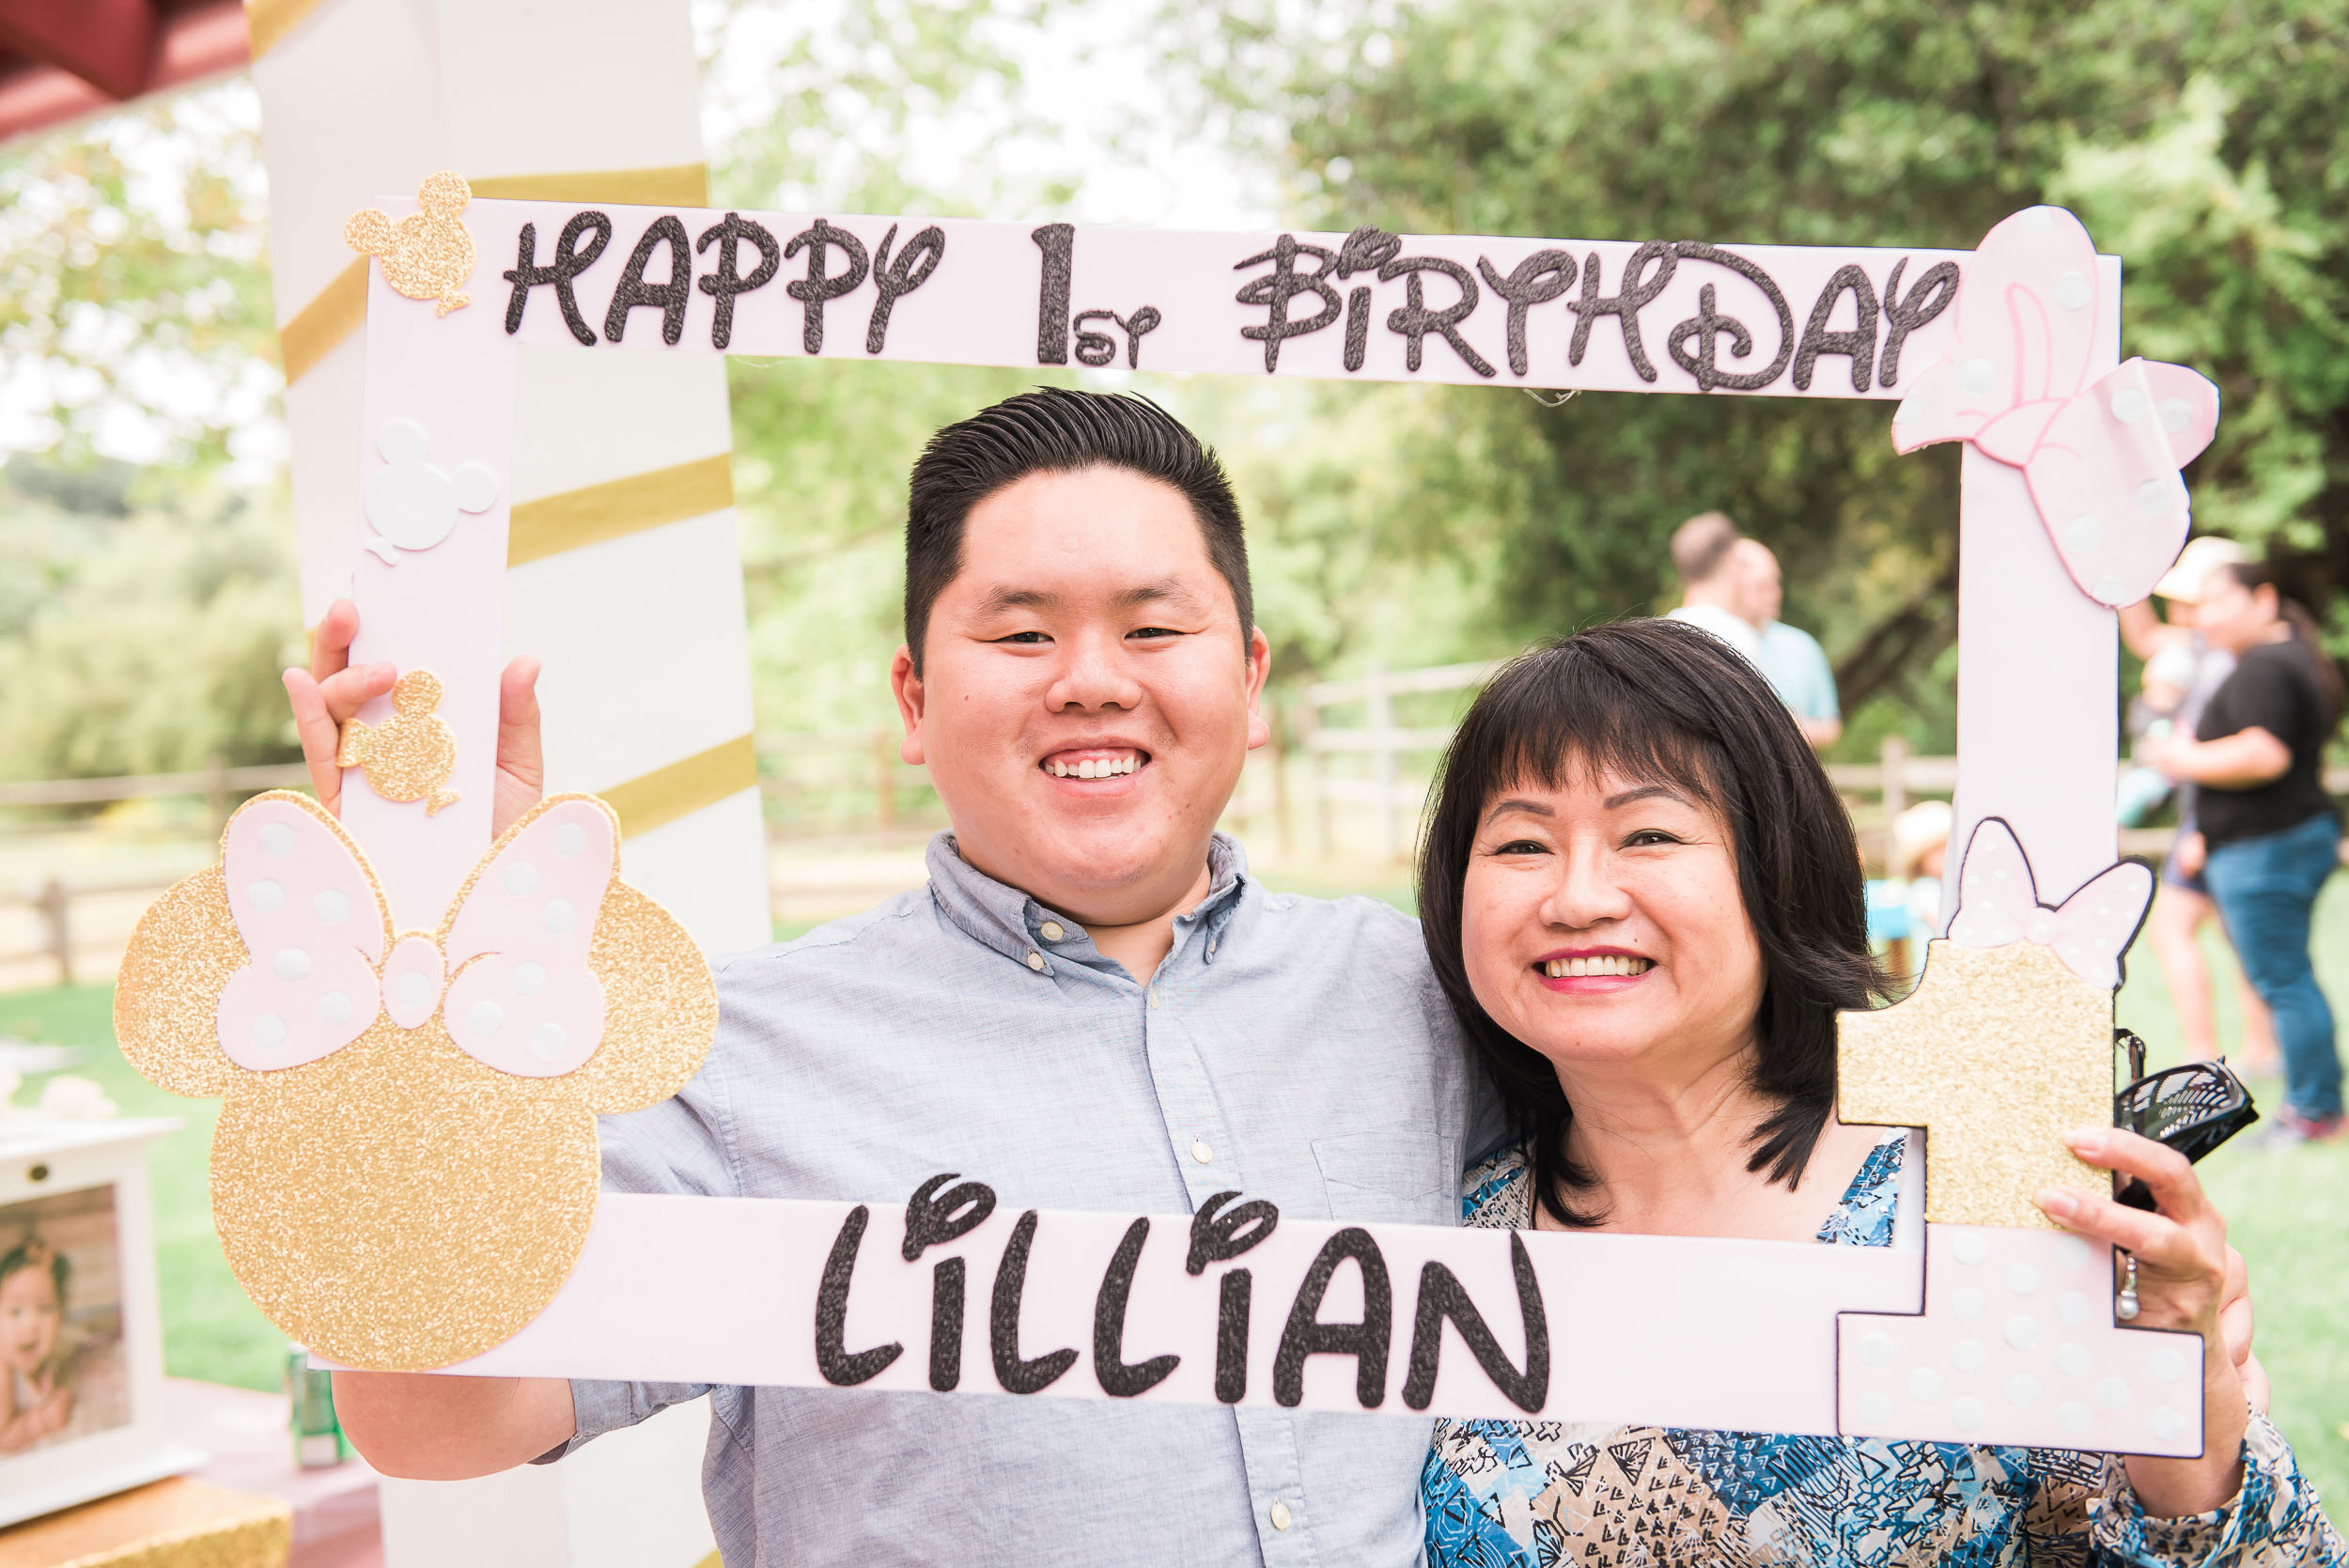 Bryan-Miraflor-Photography-Lillian's-1st-Birthday-Irvine-Railroad-Park-20170409-0016.jpg